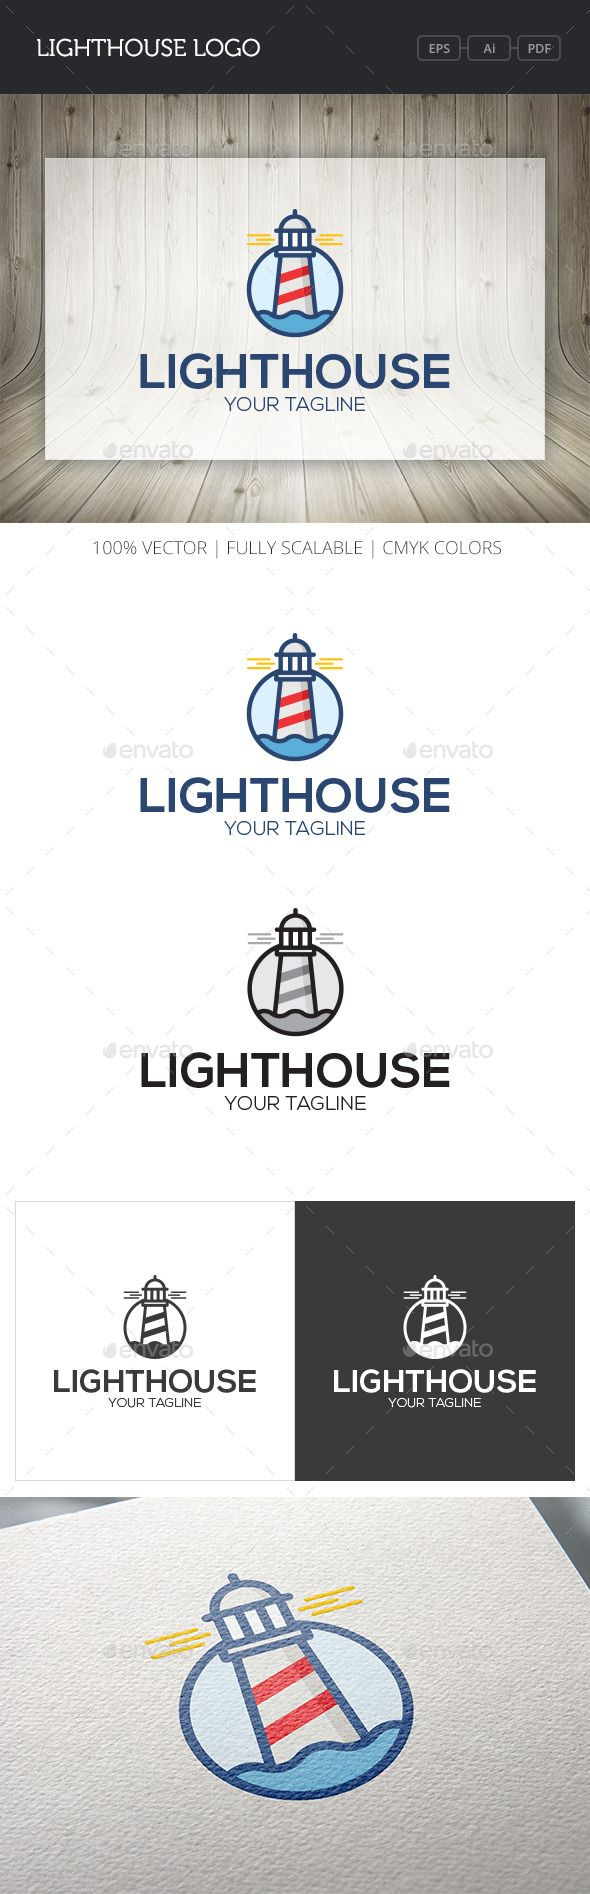 Lighthouse logo Ideal for creative studio, motion picture, research lab etc.Whats inside:AI (v12), EPS (v10) files - 100 vector,